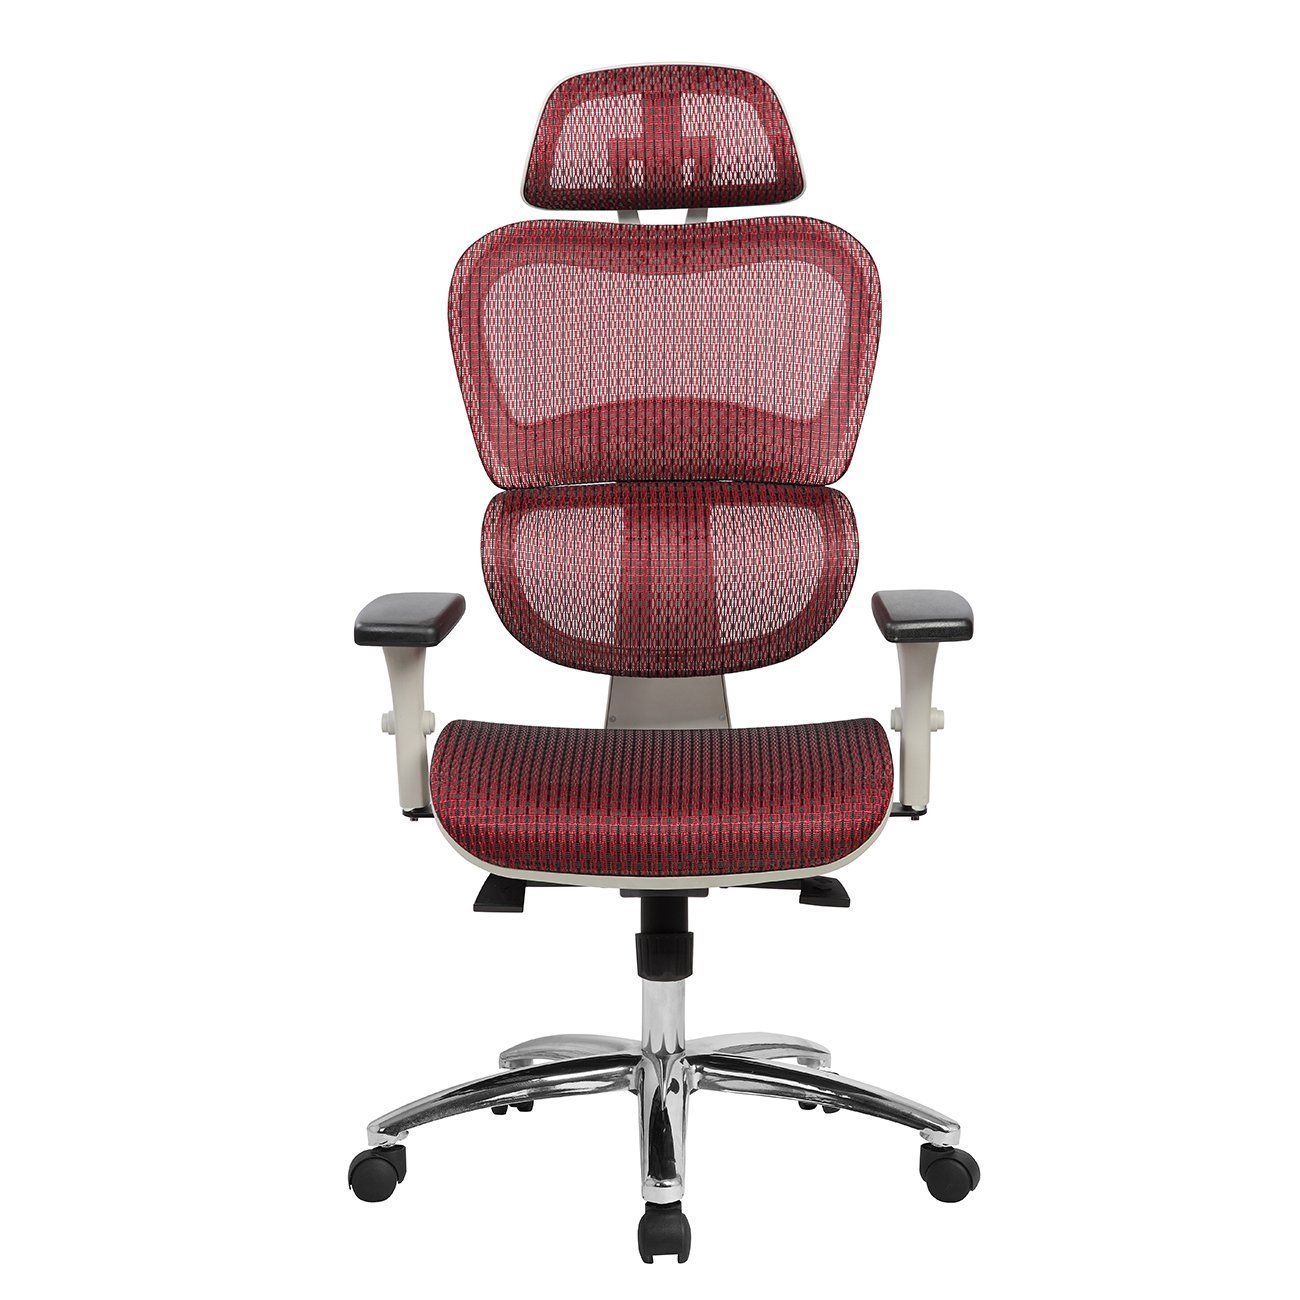 Techni Mobili Deluxe High Back Mesh Office Executive Chair With